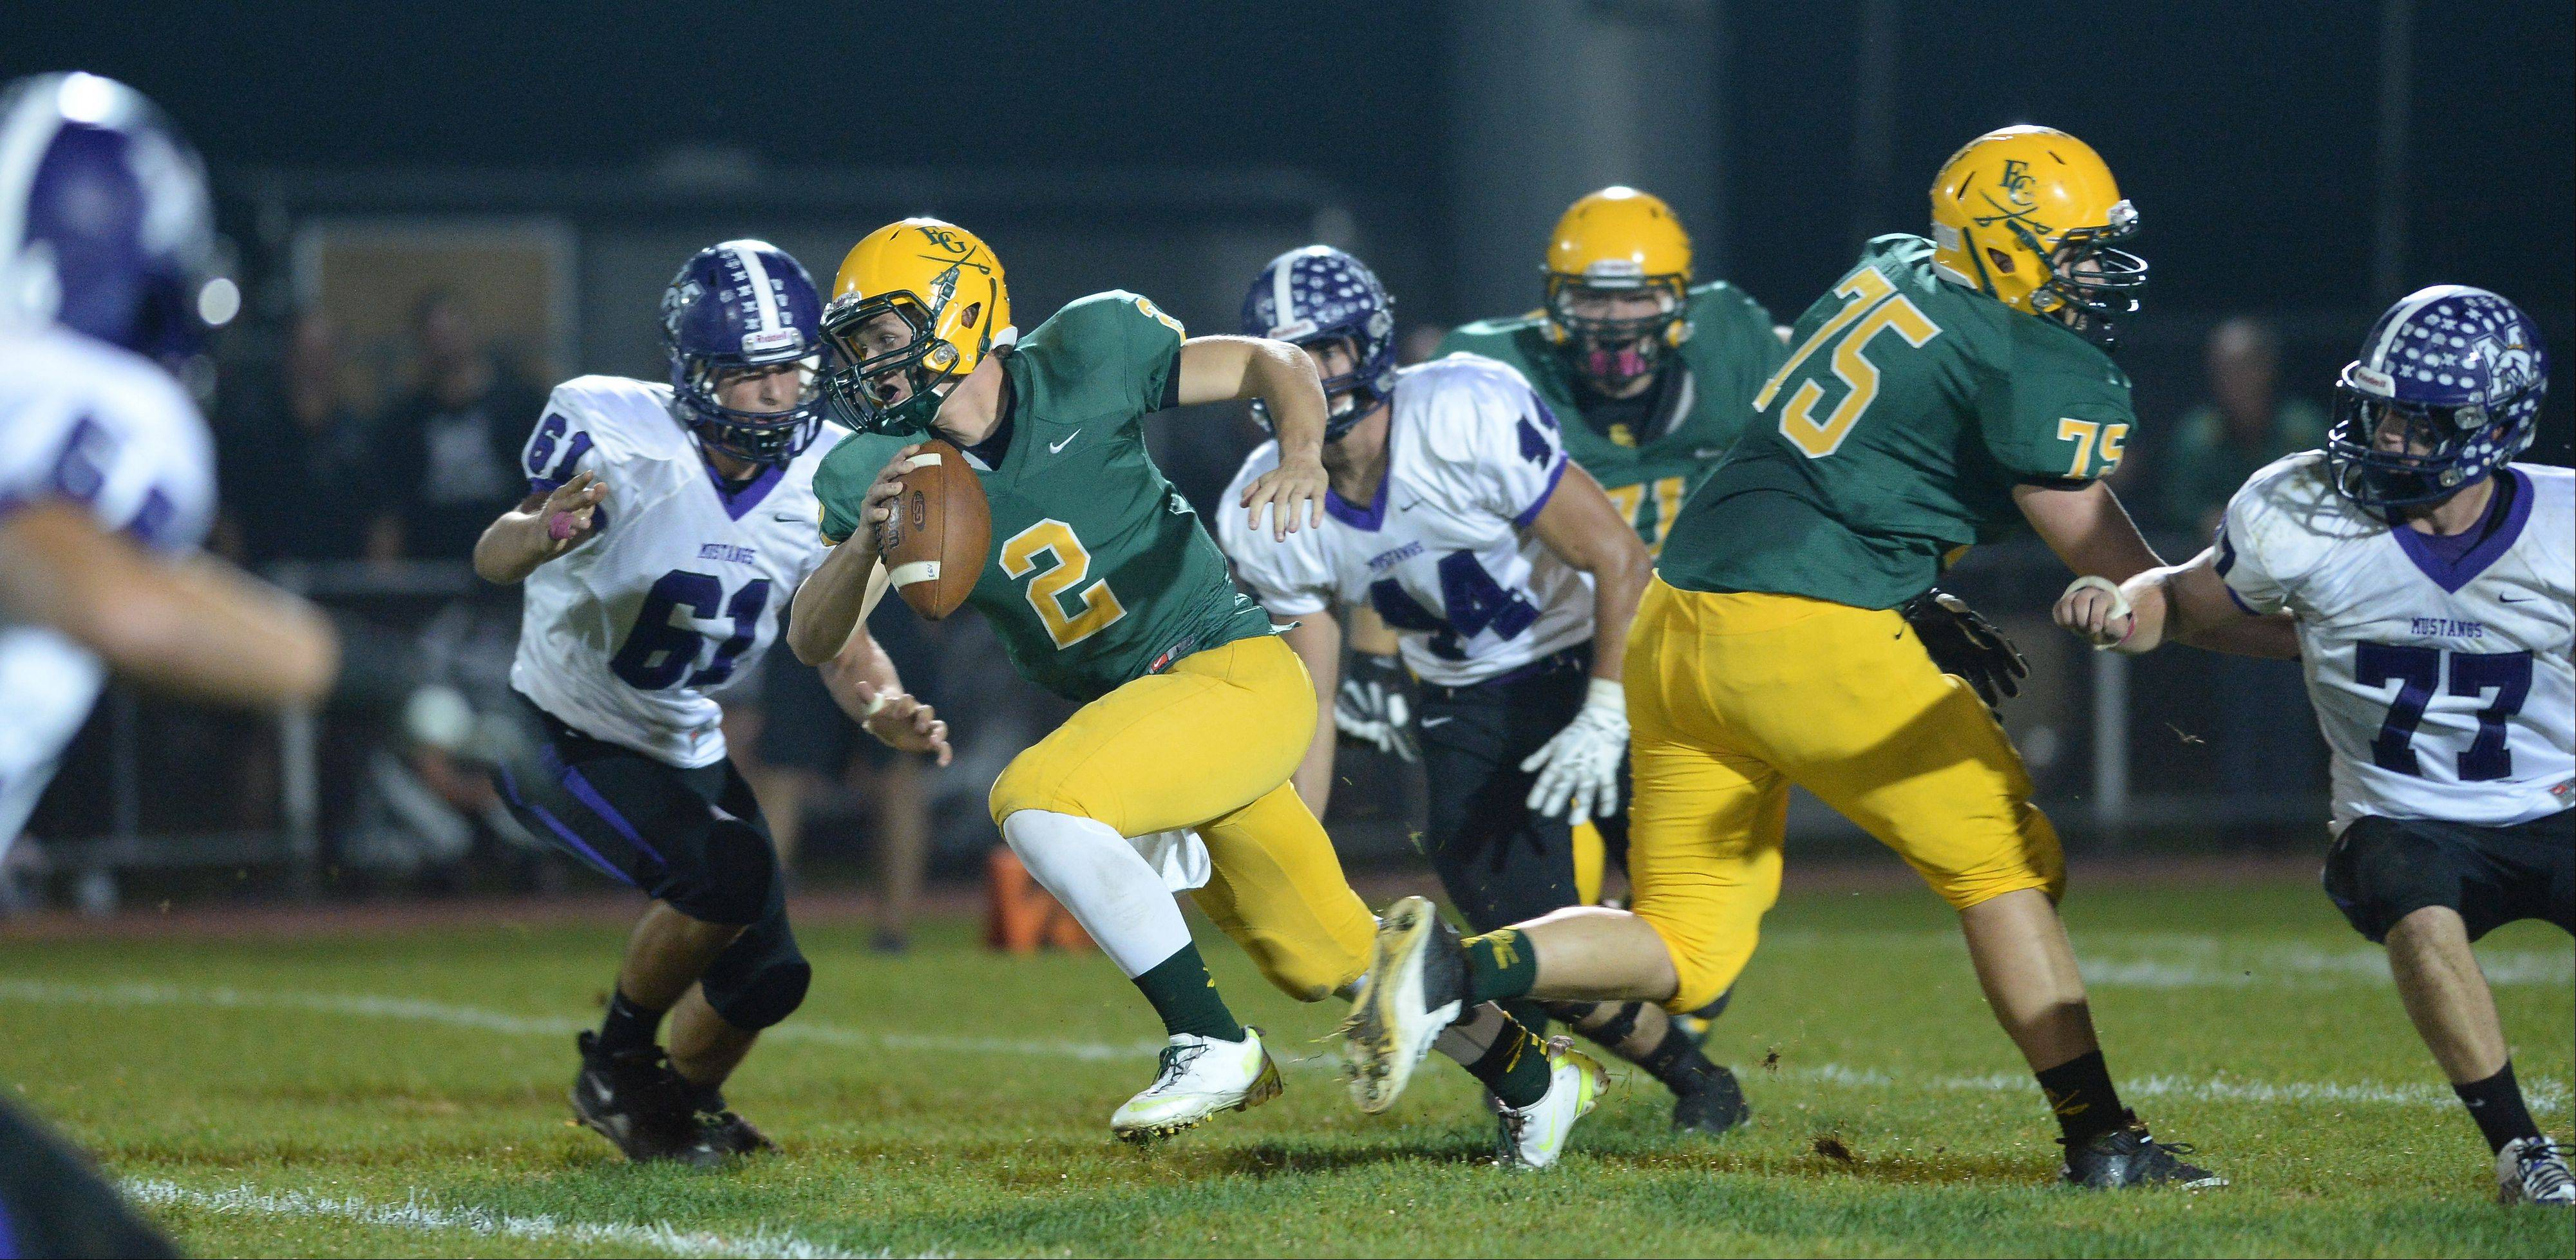 Week -6- Photos from the Elk Grove vs. Rolling Meadows football game on Friday, October 4th, in Elk Grove.